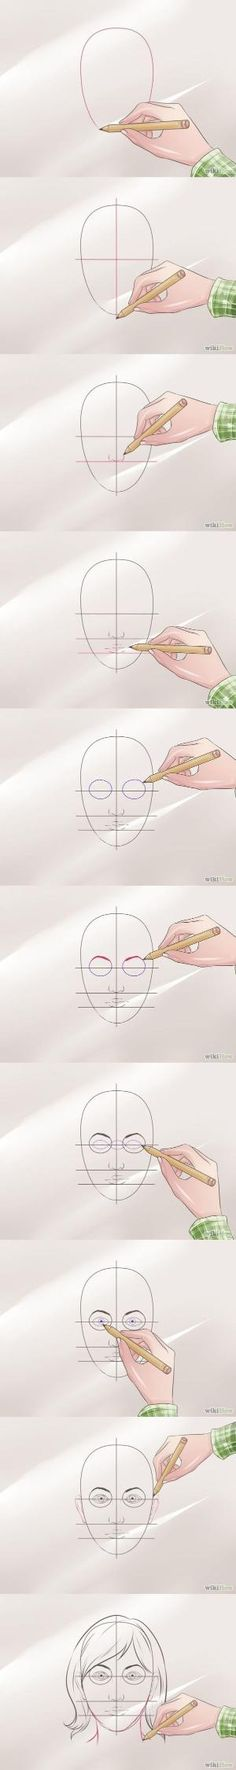 How to draw a face Step by step tutorial Wikihow #draw #face #drawing #how to by olga by olga